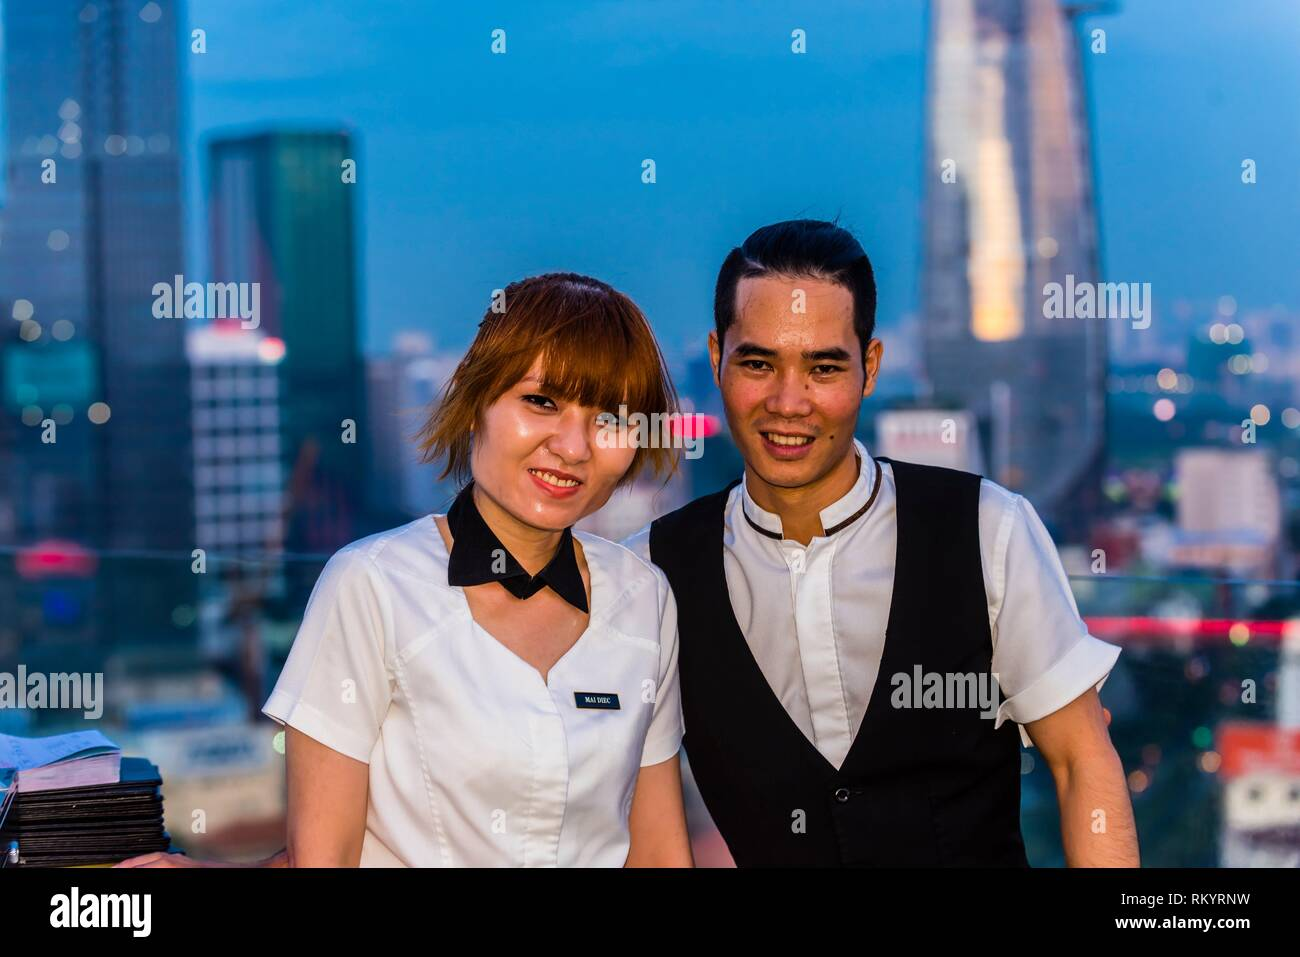 The Chill Skybar on the 25th floor of AB Tower, which has tremendous panoramic views over the city, District 1, Ho Chi Minh CIty (Saigon), Vietnam. Stock Photo